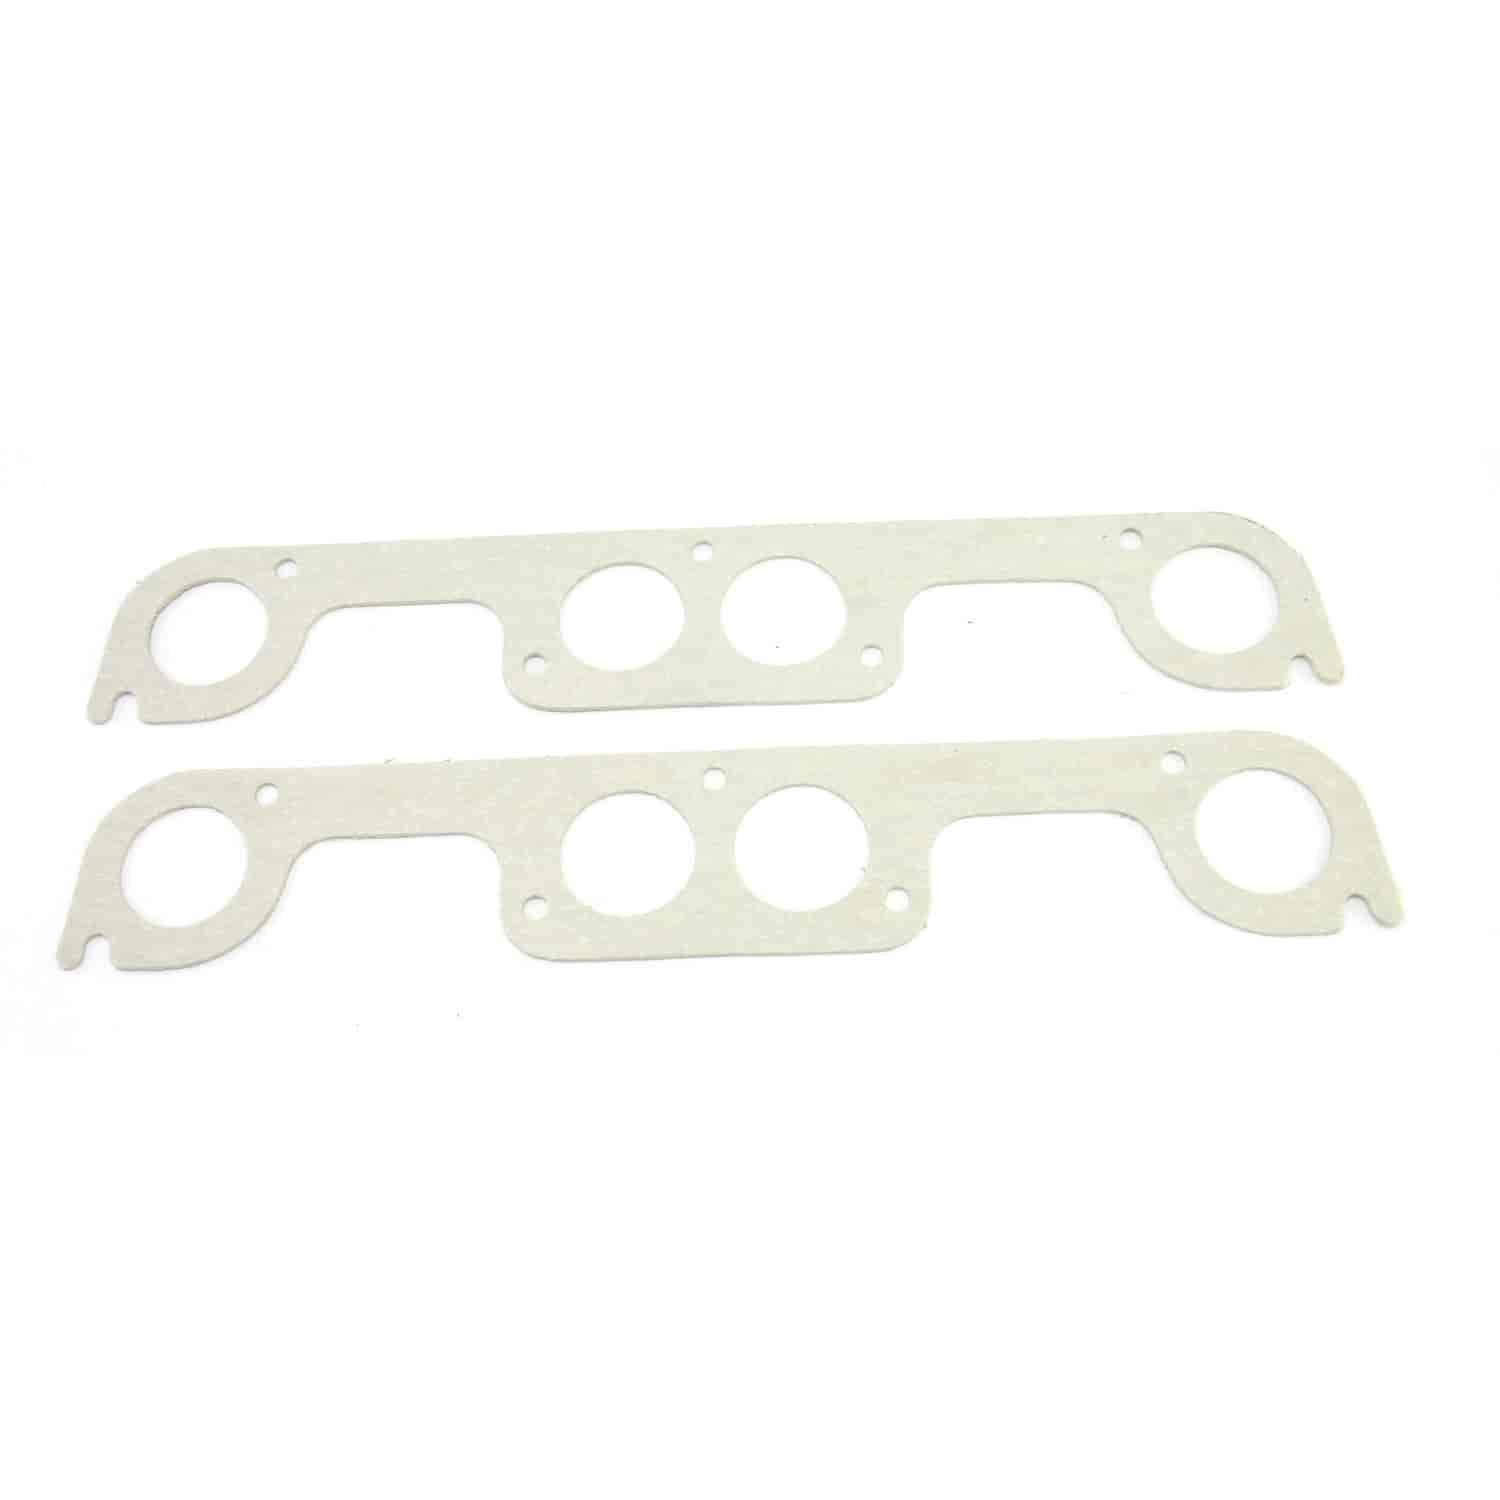 Patriot Exhaust H7553 - Patriot Exhaust Header Flange Gaskets